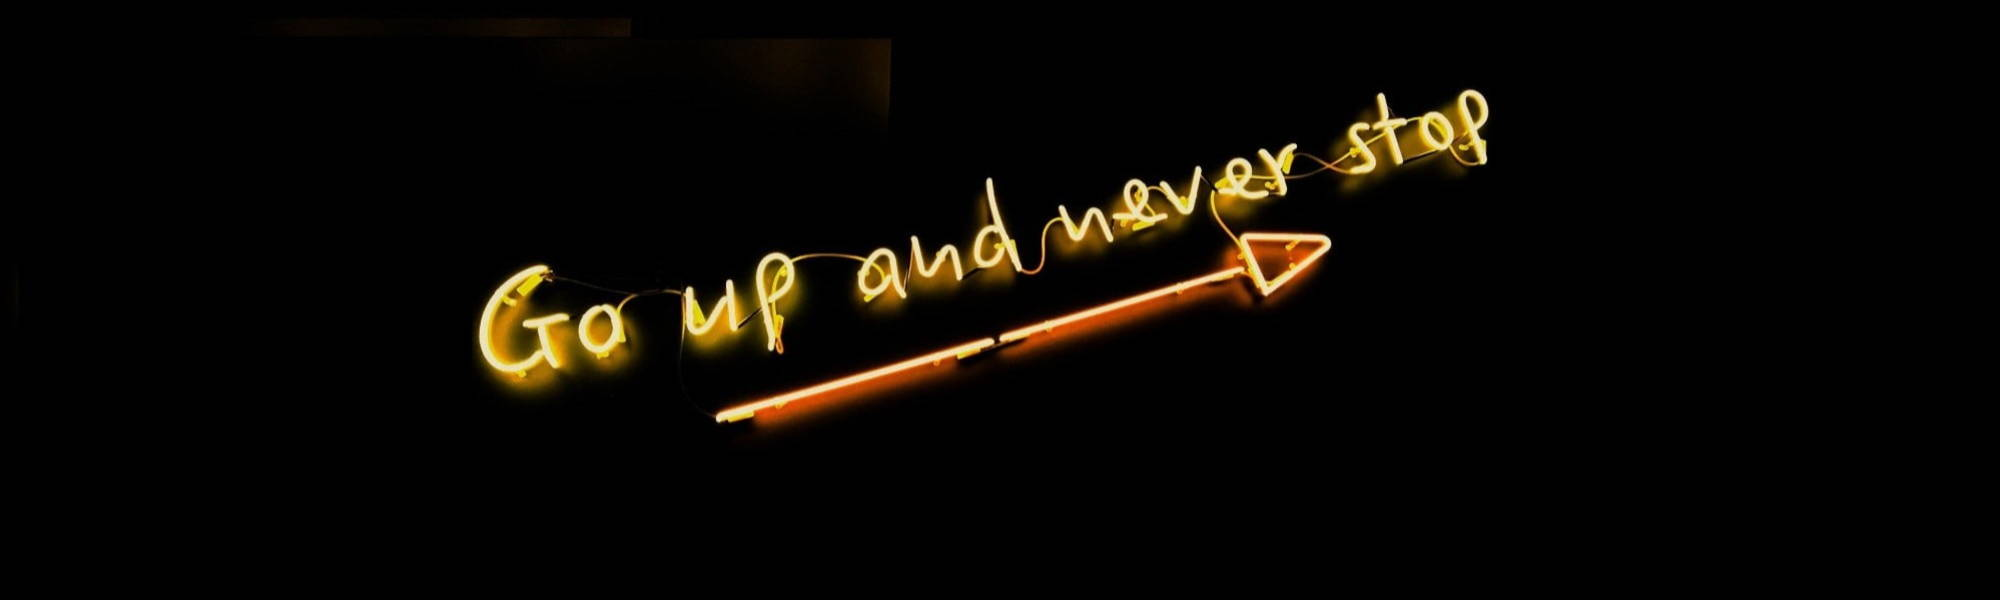 Neon light saying go up and never stop